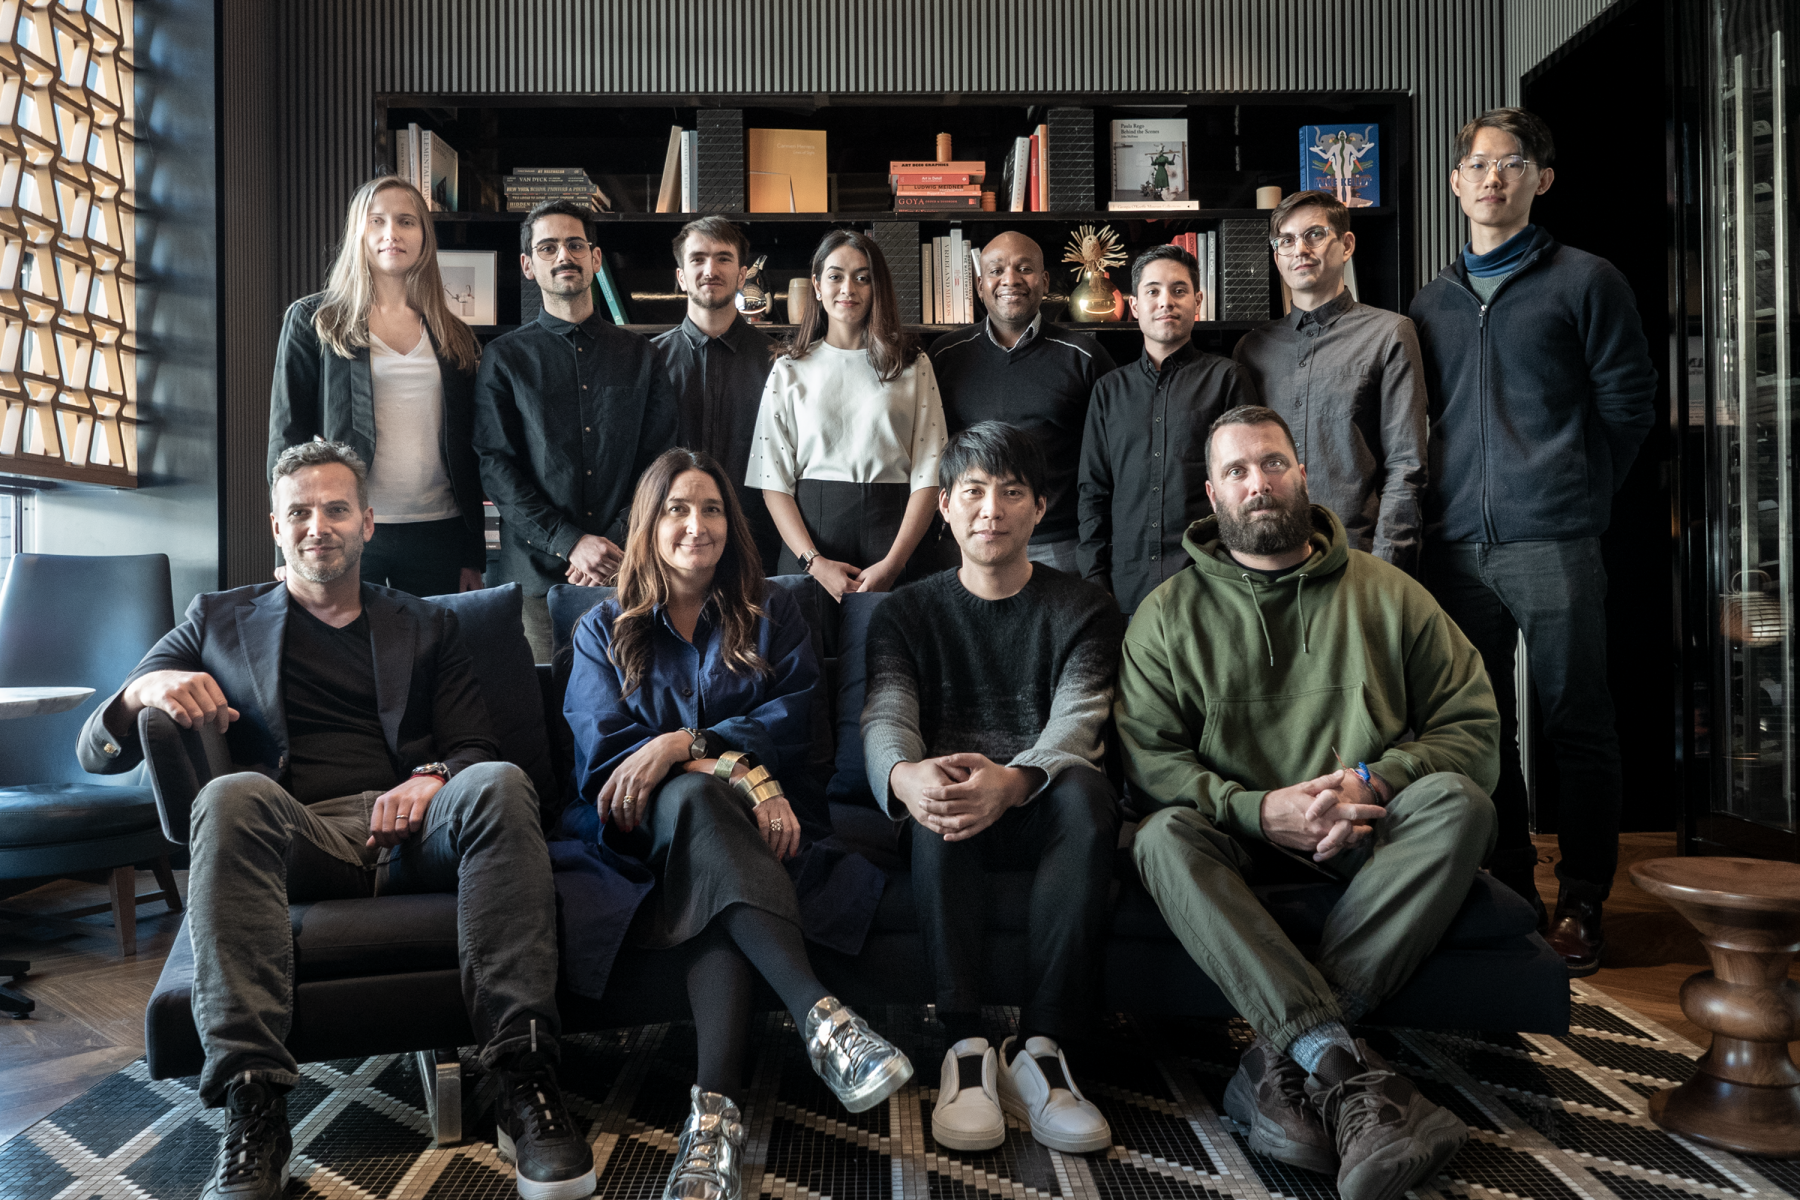 Lexus Design Award 2020 group photo